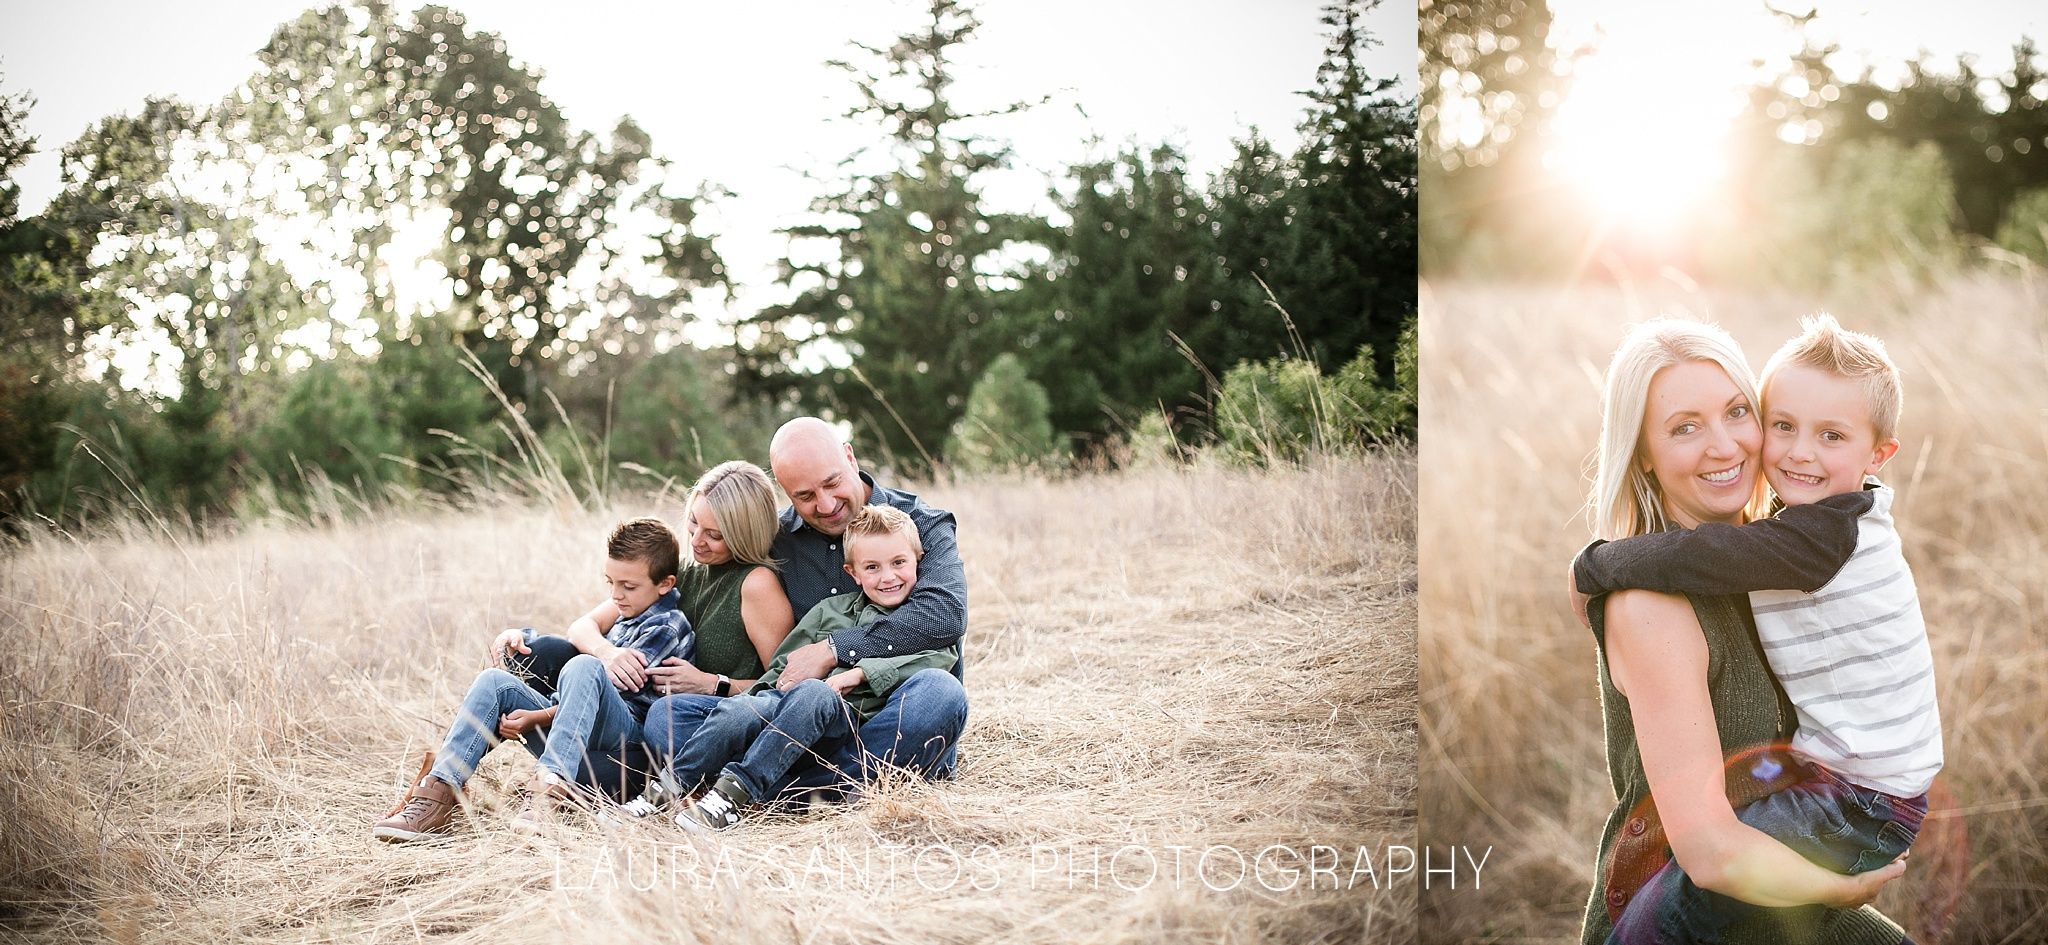 Laura Santos Photography Portland Oregon Family Photographer_0420.jpg